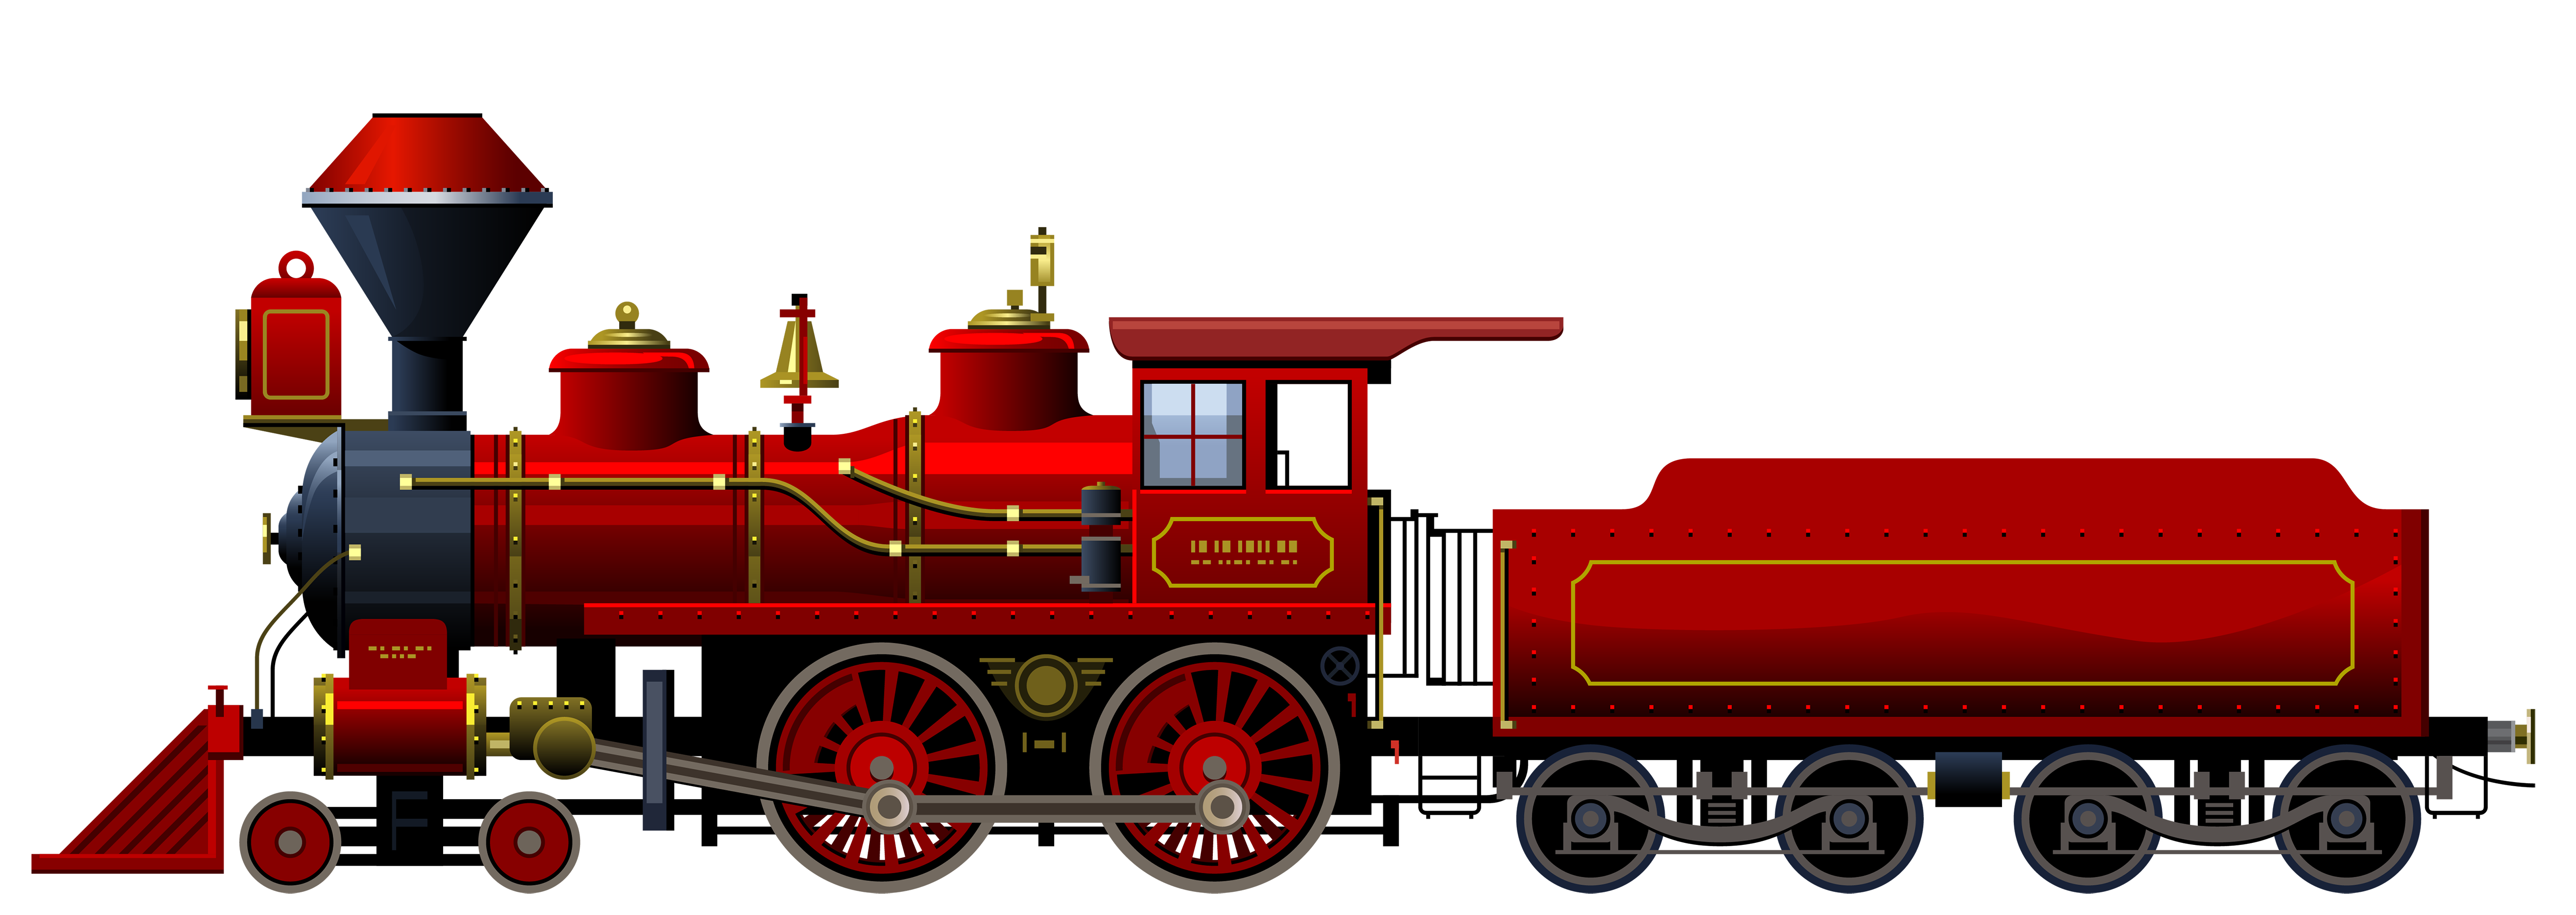 Engine clipart red train. Locomotive png best web